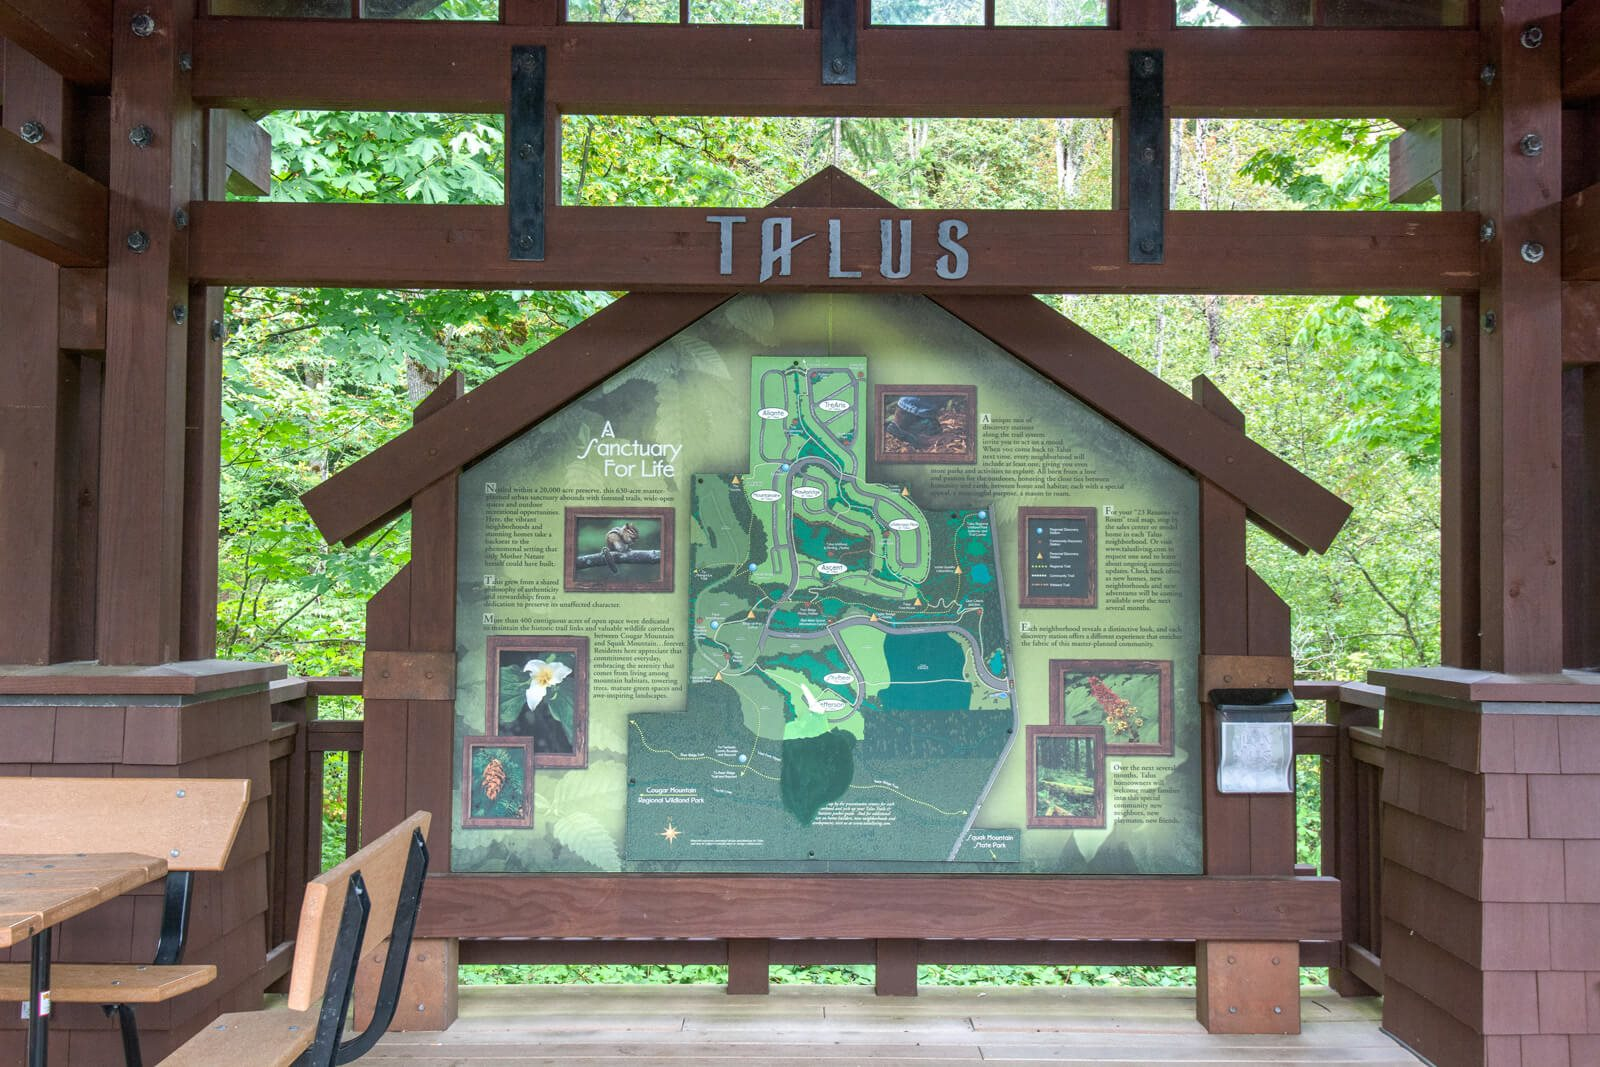 Talus is nearby at The Estates at Cougar Mountain, 2128 Shy Bear Way NW, WA